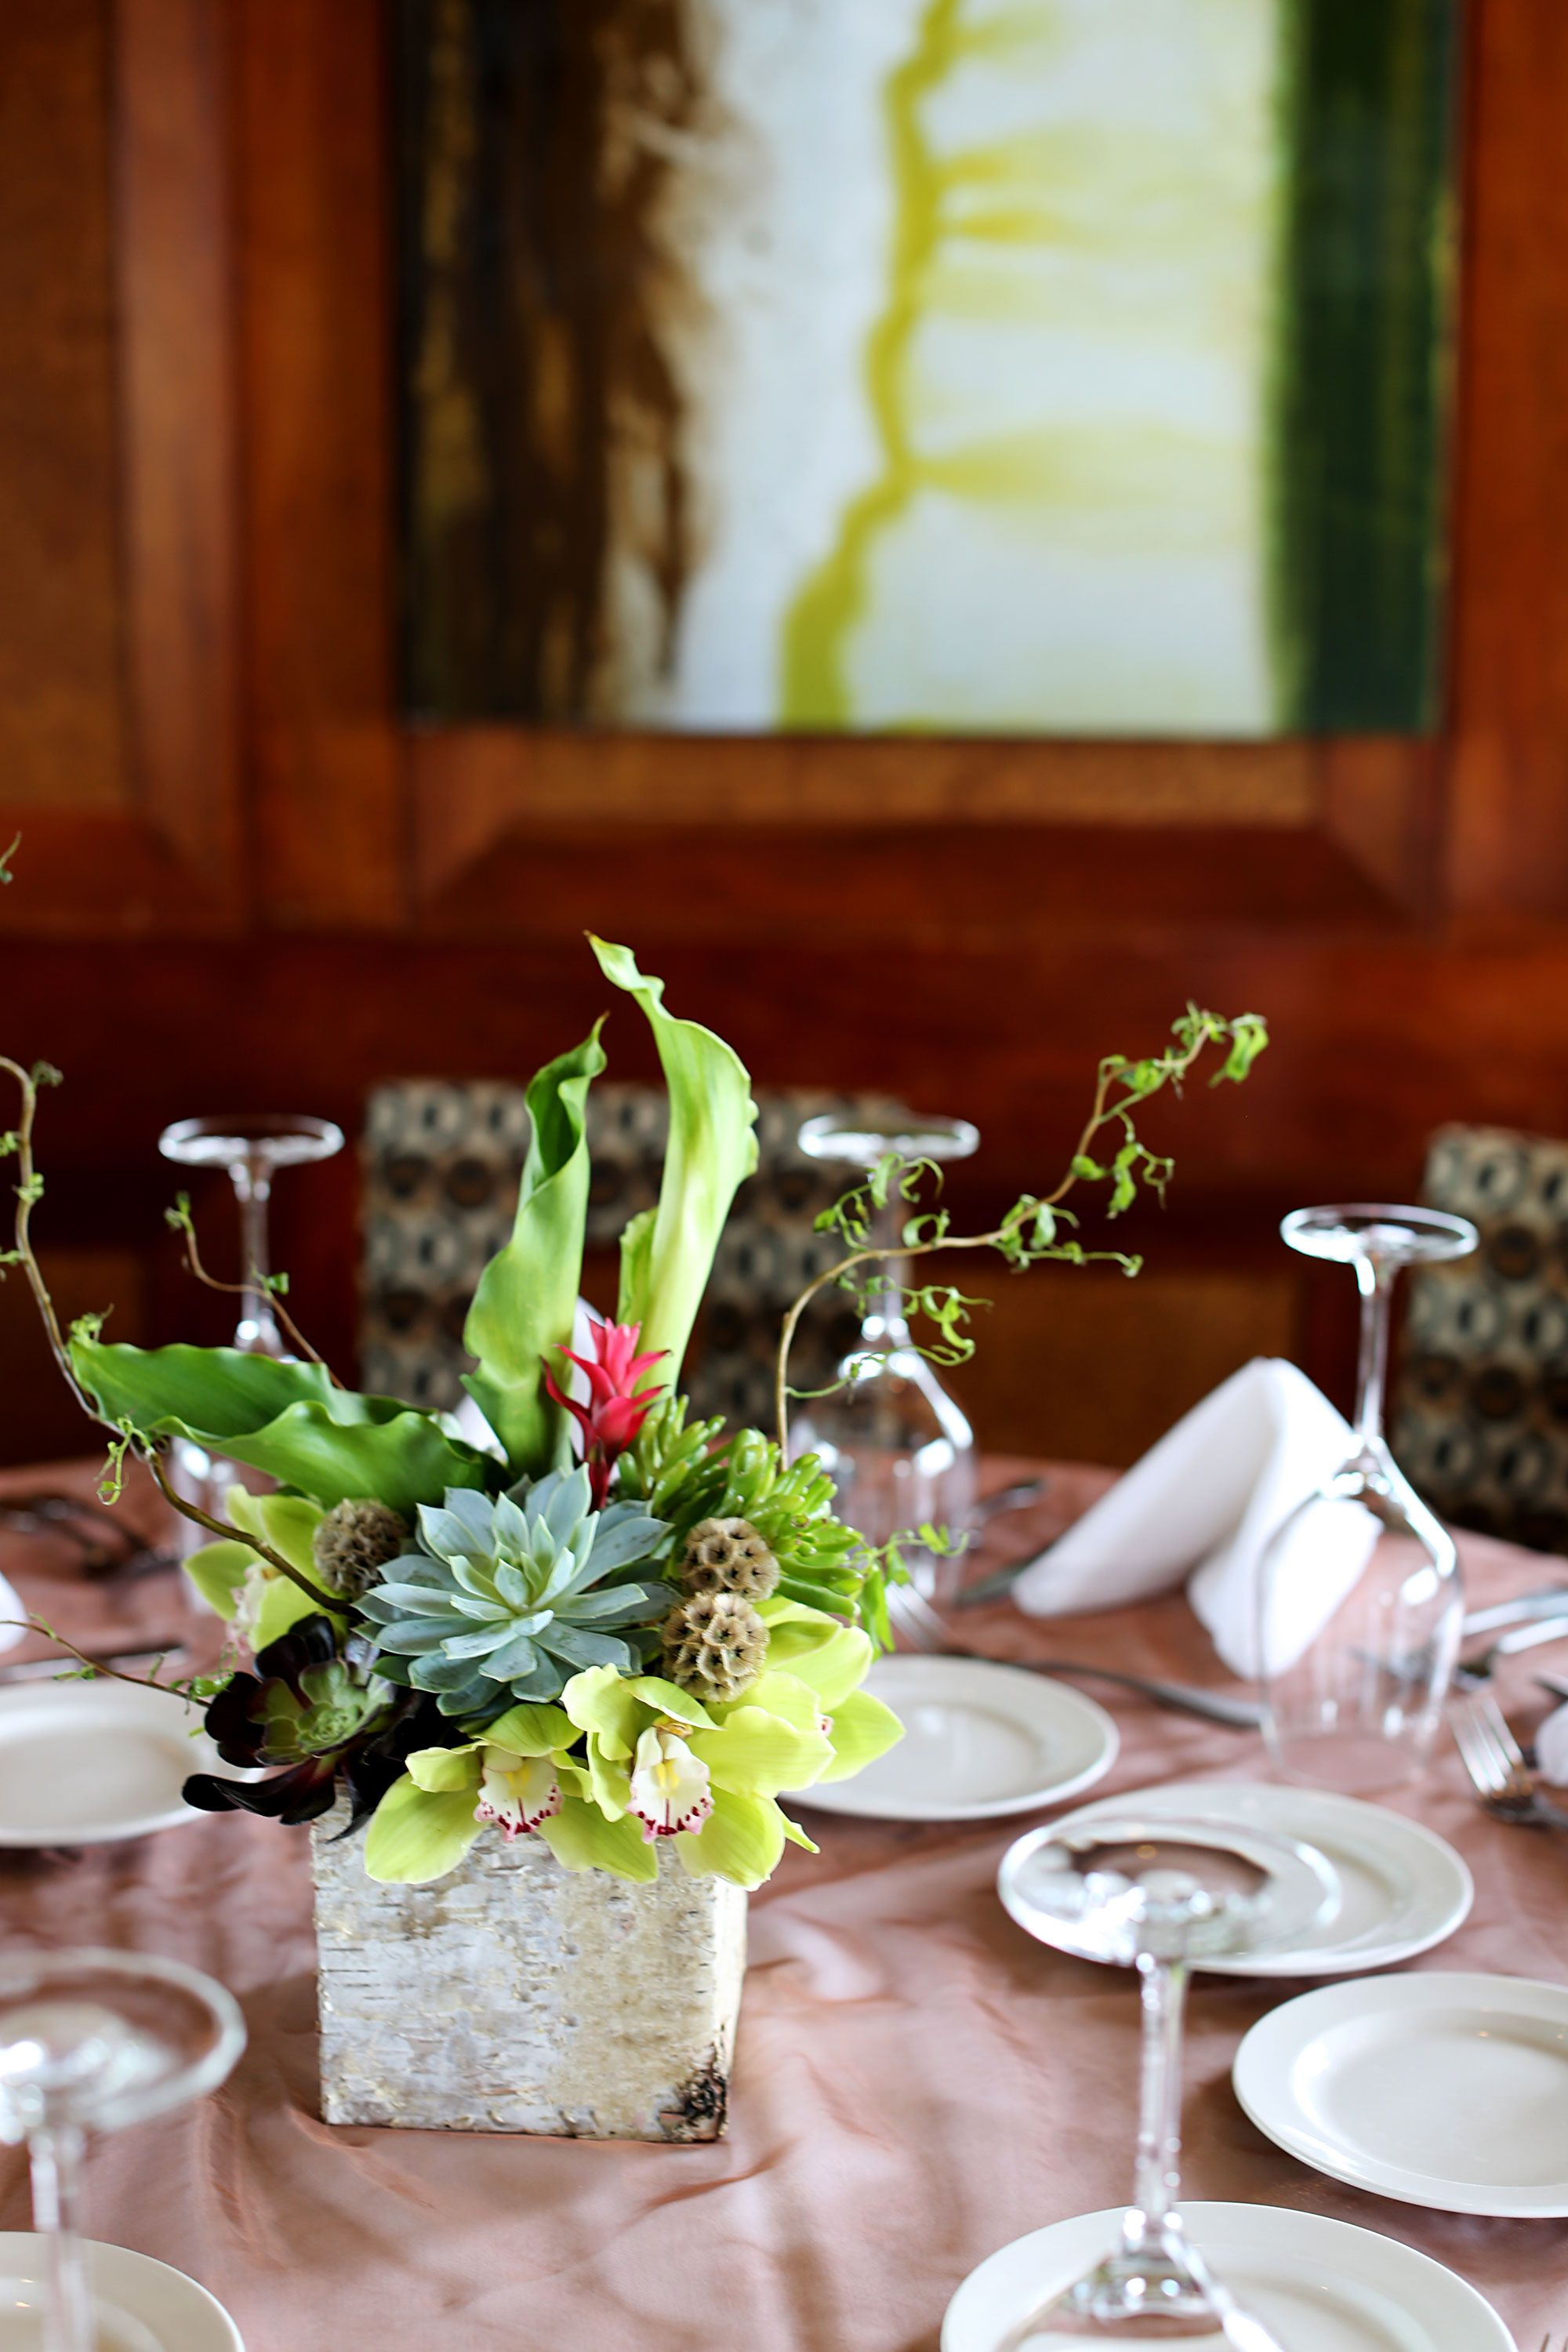 Aeonium Succulents Arrangements With Cymbidium Orchid Curly Willow Tip Calla Lilly Leucodendron Scab Succulent Arrangements Scabiosa Pods Cymbidium Orchids